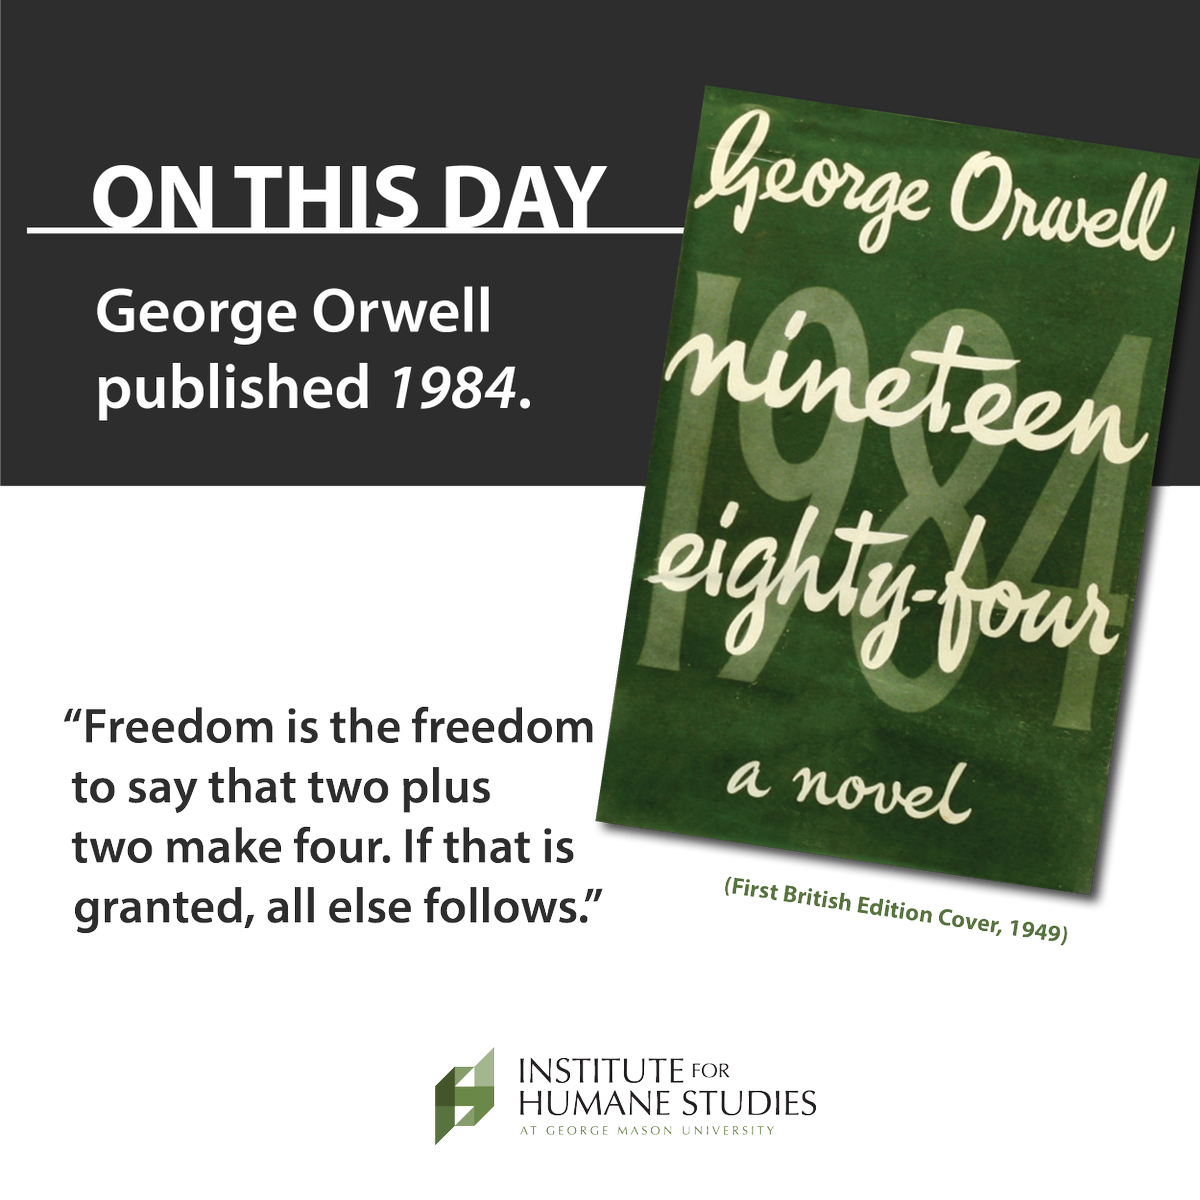 """June 8, 1949: George Orwell's dystopian novel, """"Nineteen Eighty-Four"""" is published in London. #OnThisDay https://t.co/1CWNUXGsc2"""